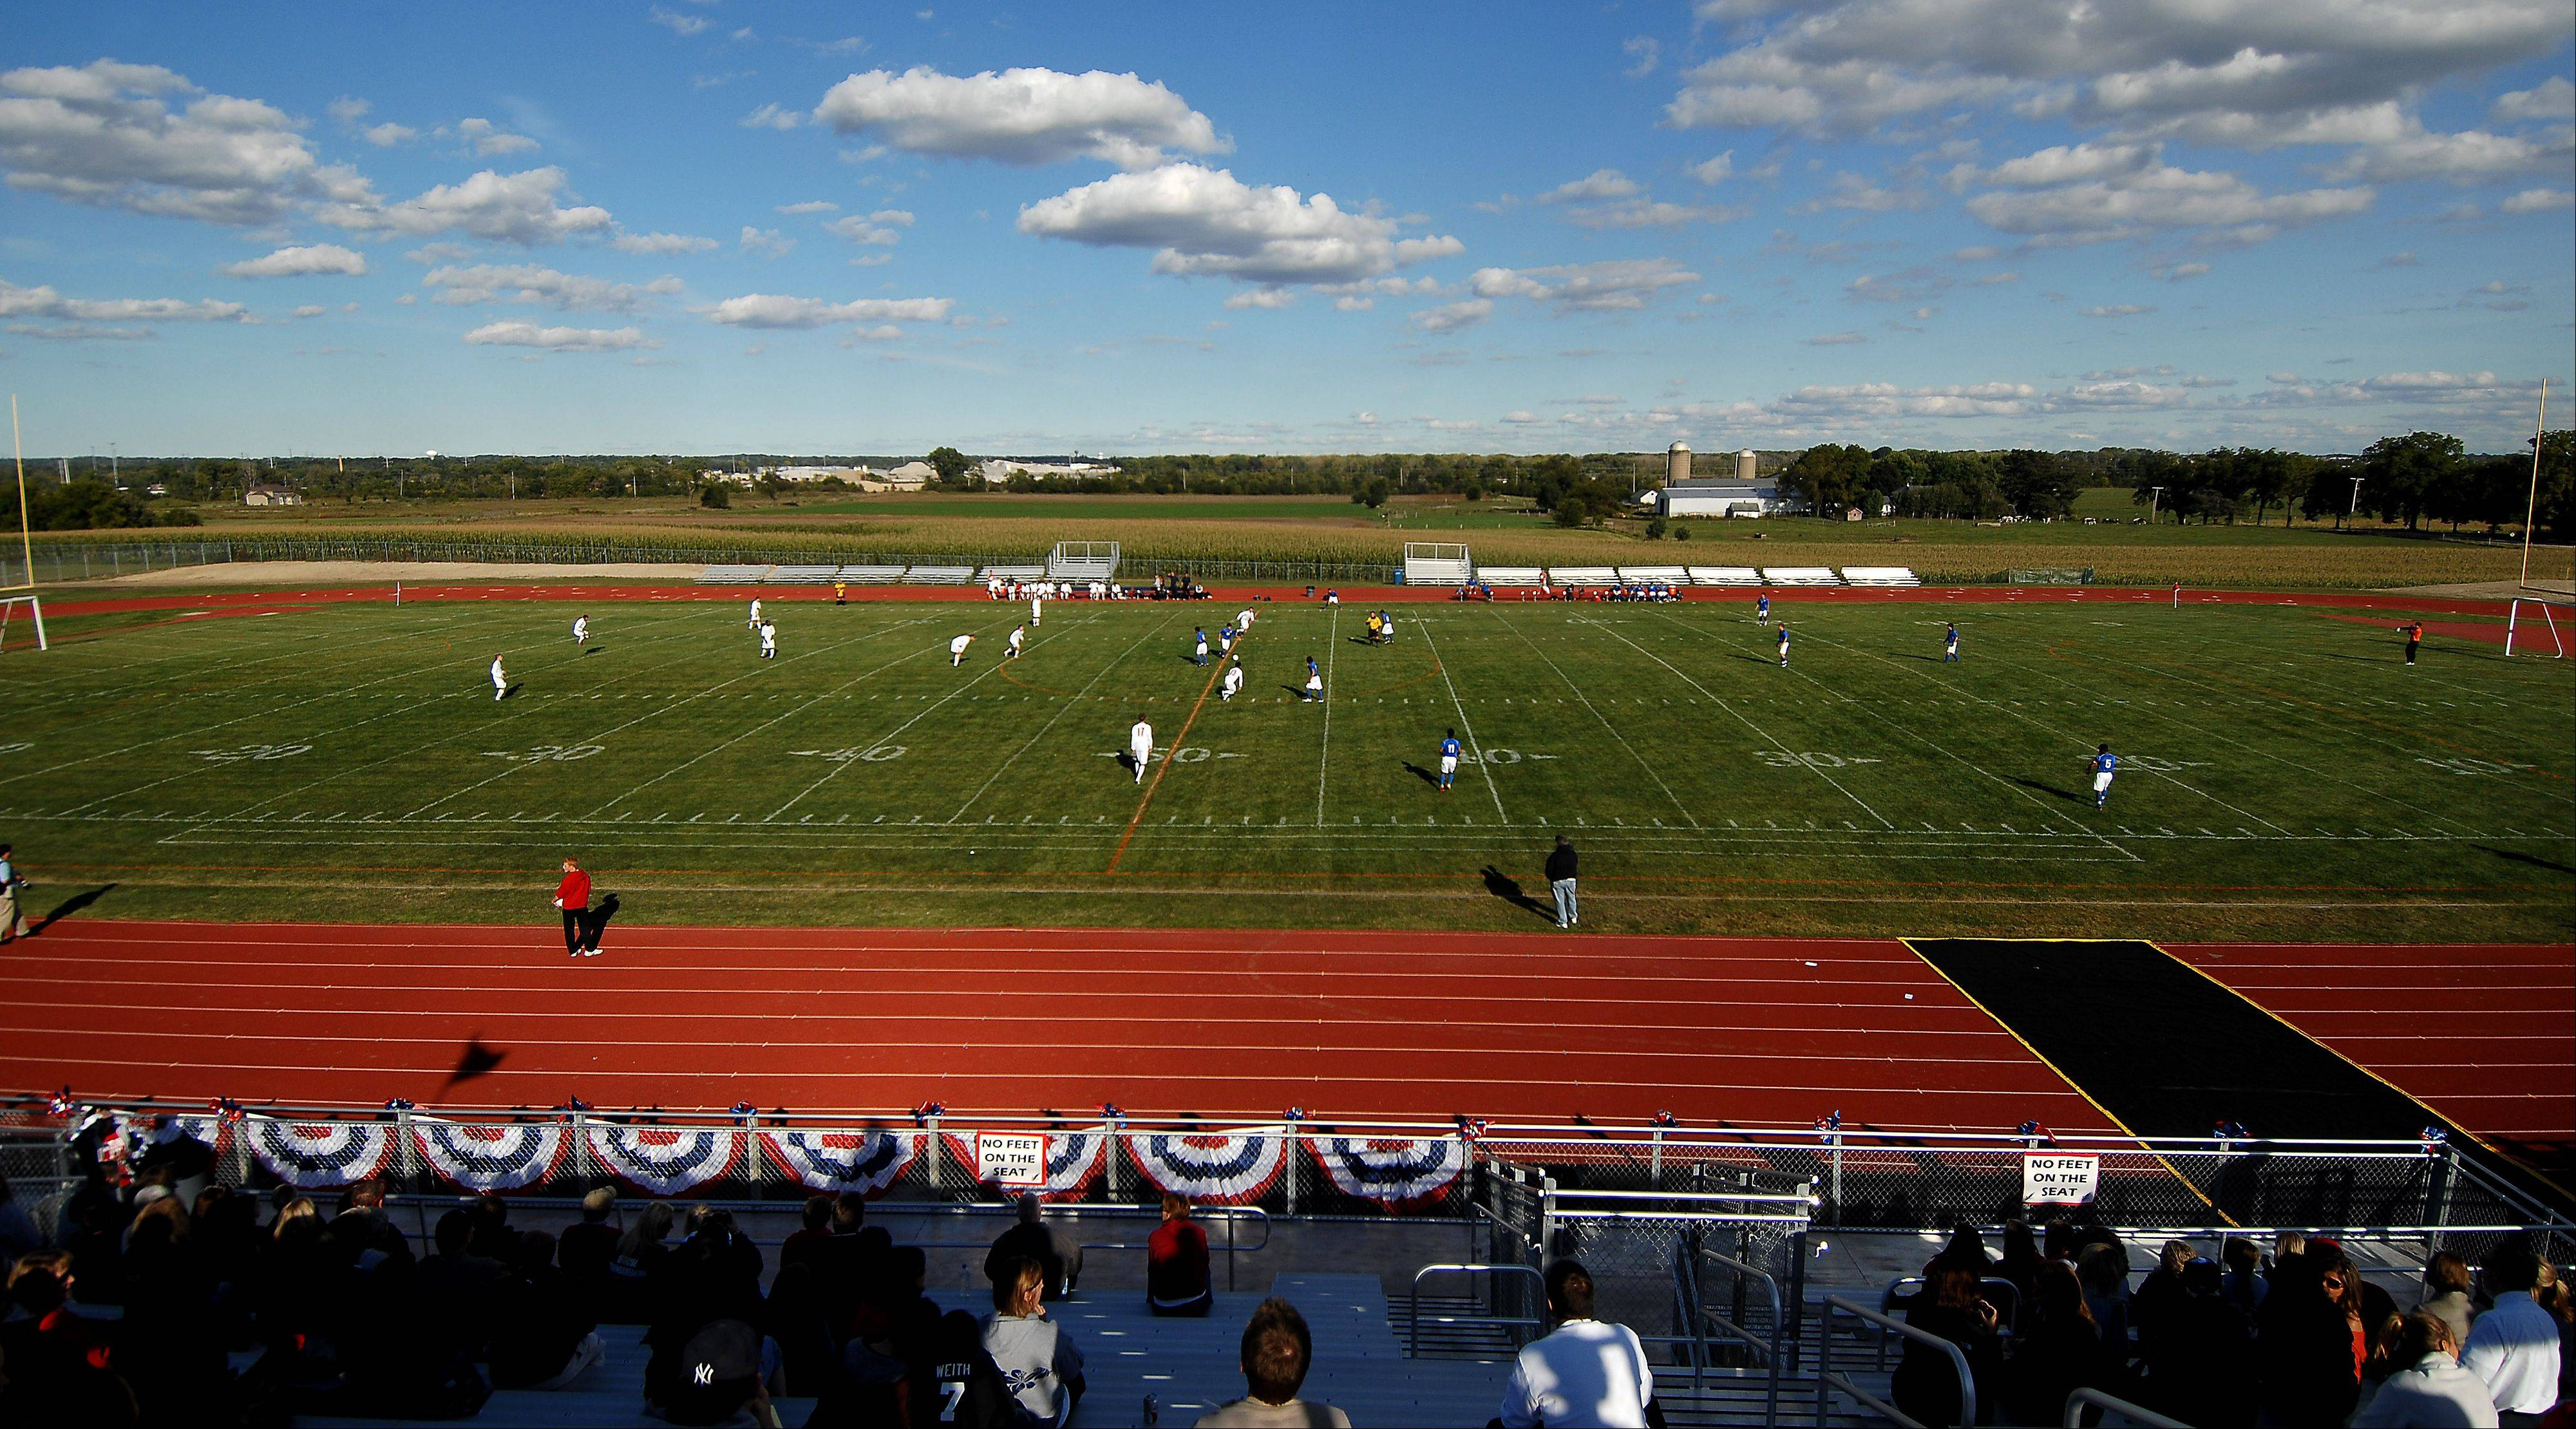 Big win in new digs for South Elgin